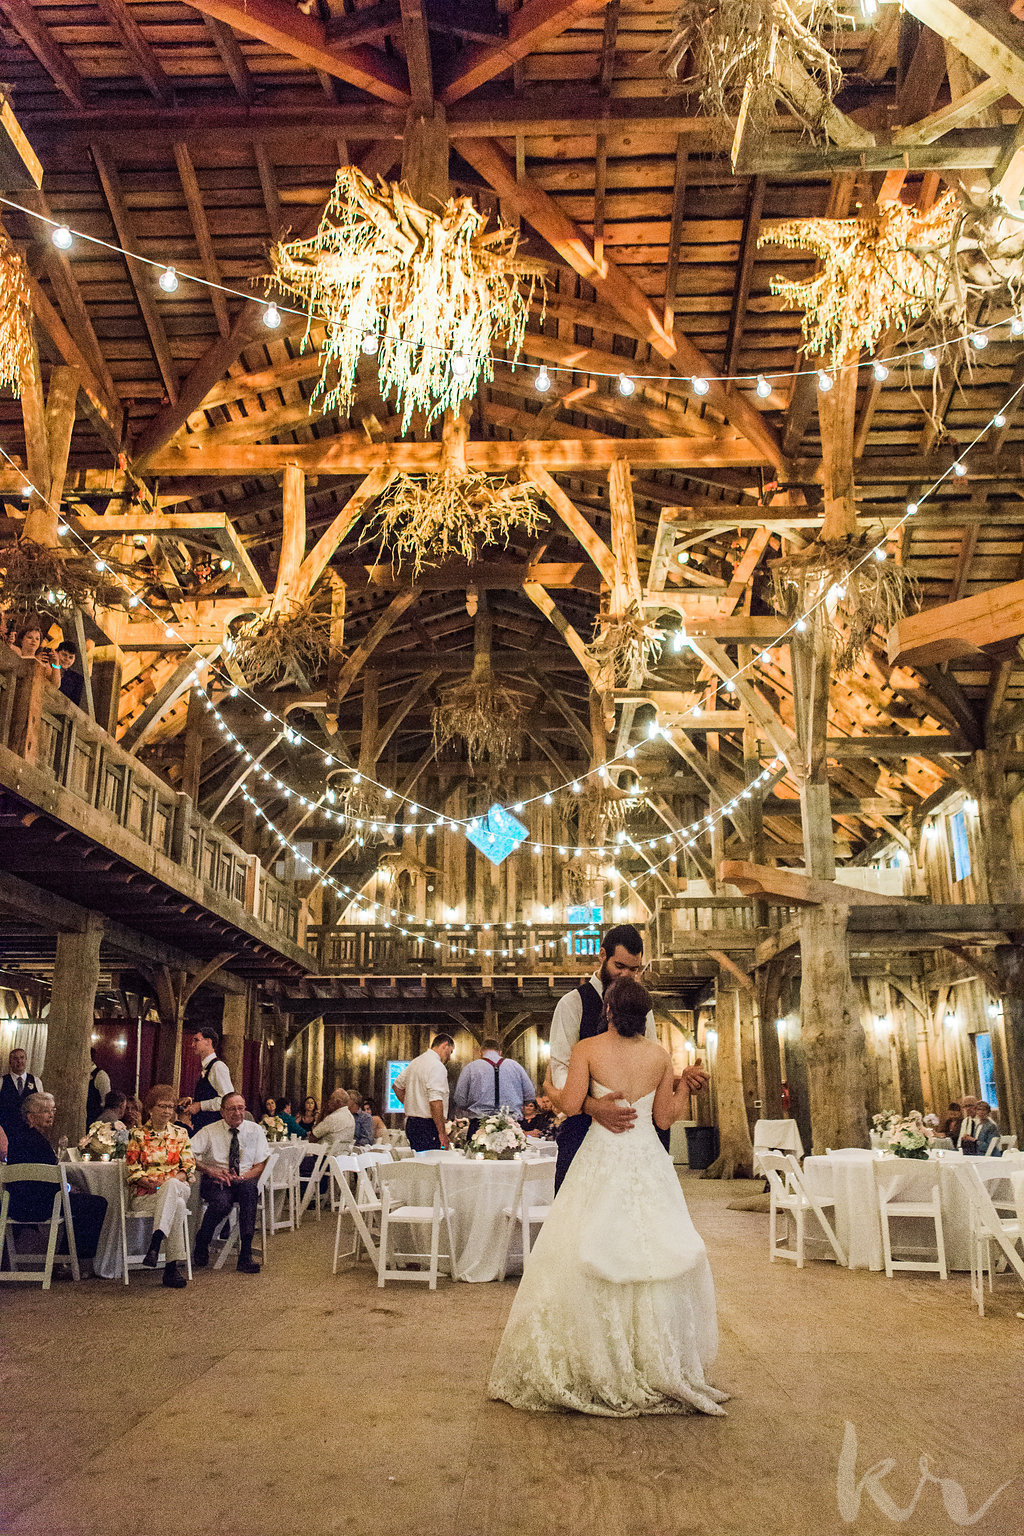 Swan Barn Door - If you're looking for a rustic venue that's more on the private side and has lots of space, this stunning facility is the one for you.Photography: Katie Ricard